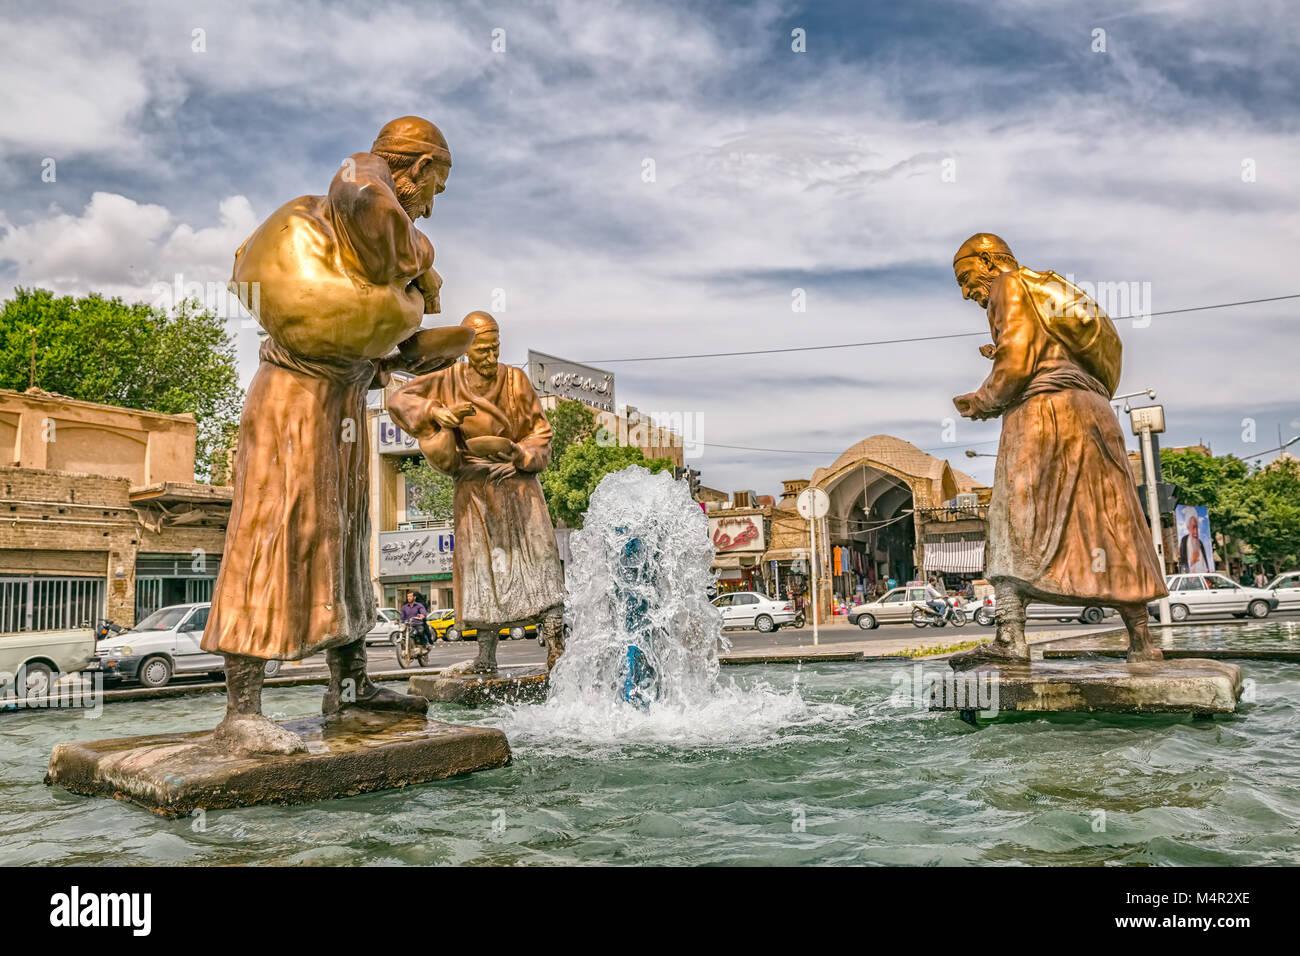 Image of: Yazd Three Old Travelers Statues In Yazd Alamy Three Old Travelers Statues In Yazd Stock Photo 175069510 Alamy